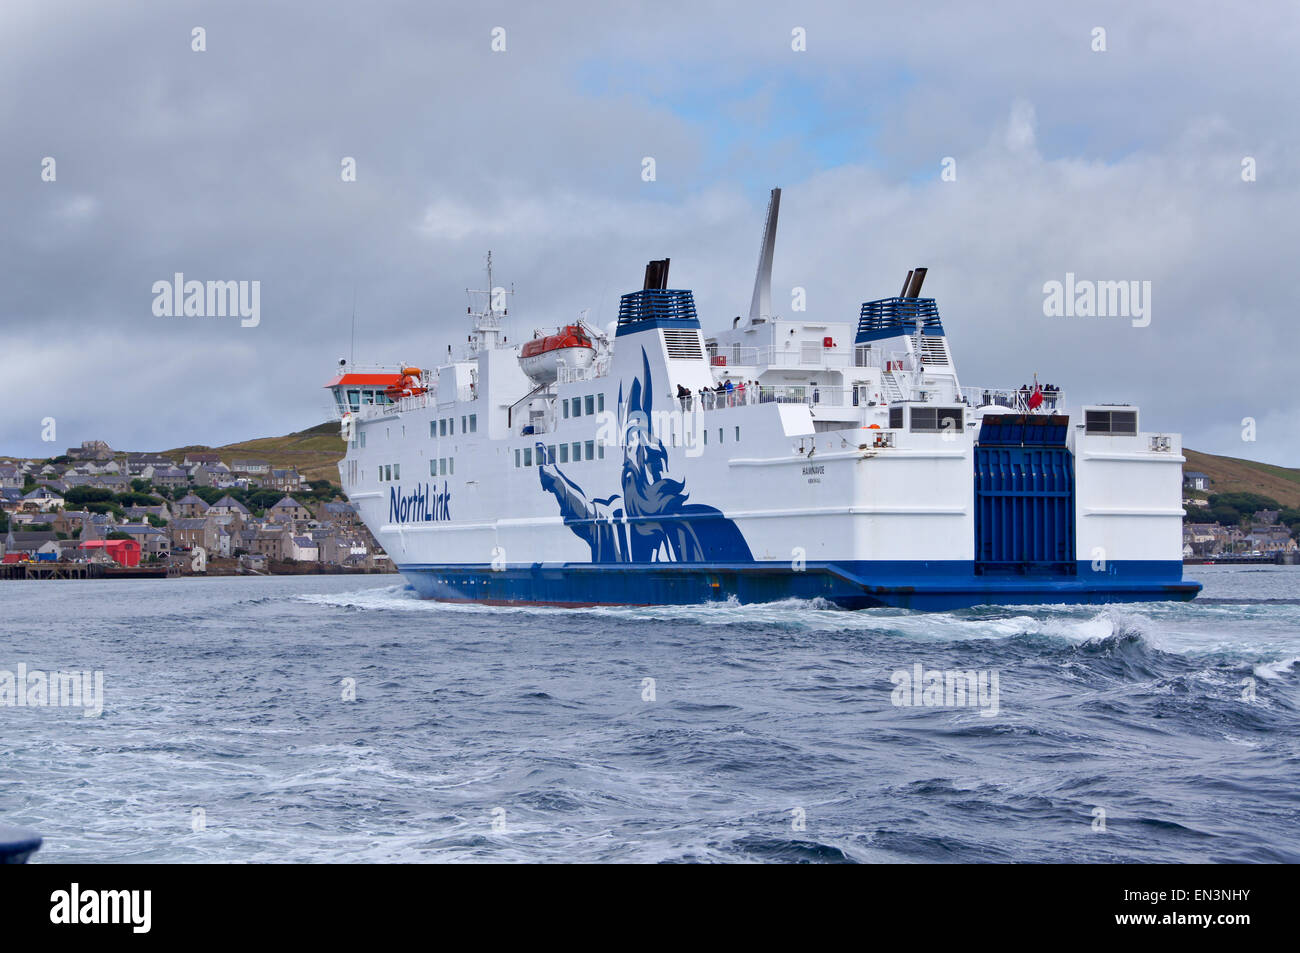 Stromness Scrabster Ferry High Resolution Stock Photography And Images Alamy